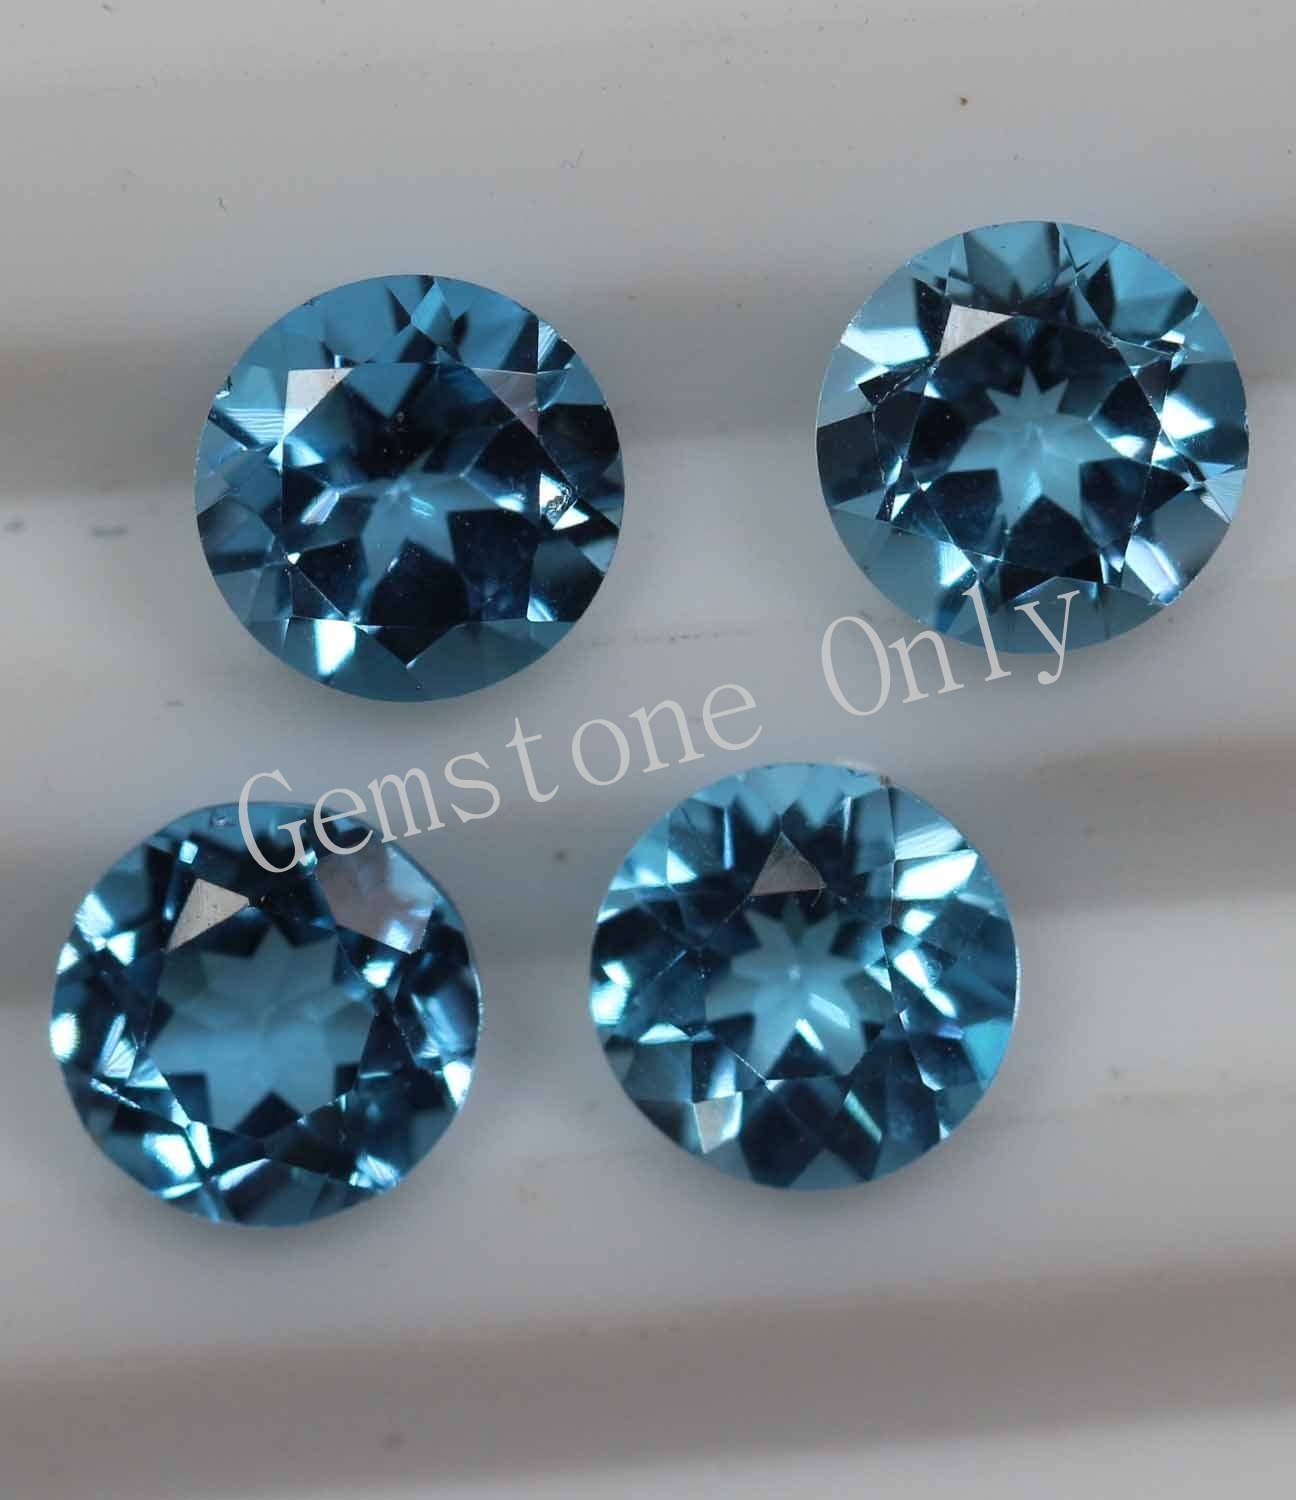 7mm Natural Swiss Blue topaz Faceted Cut Round 5 Pieces Blue Color Calibrated Size Loose Gemstone